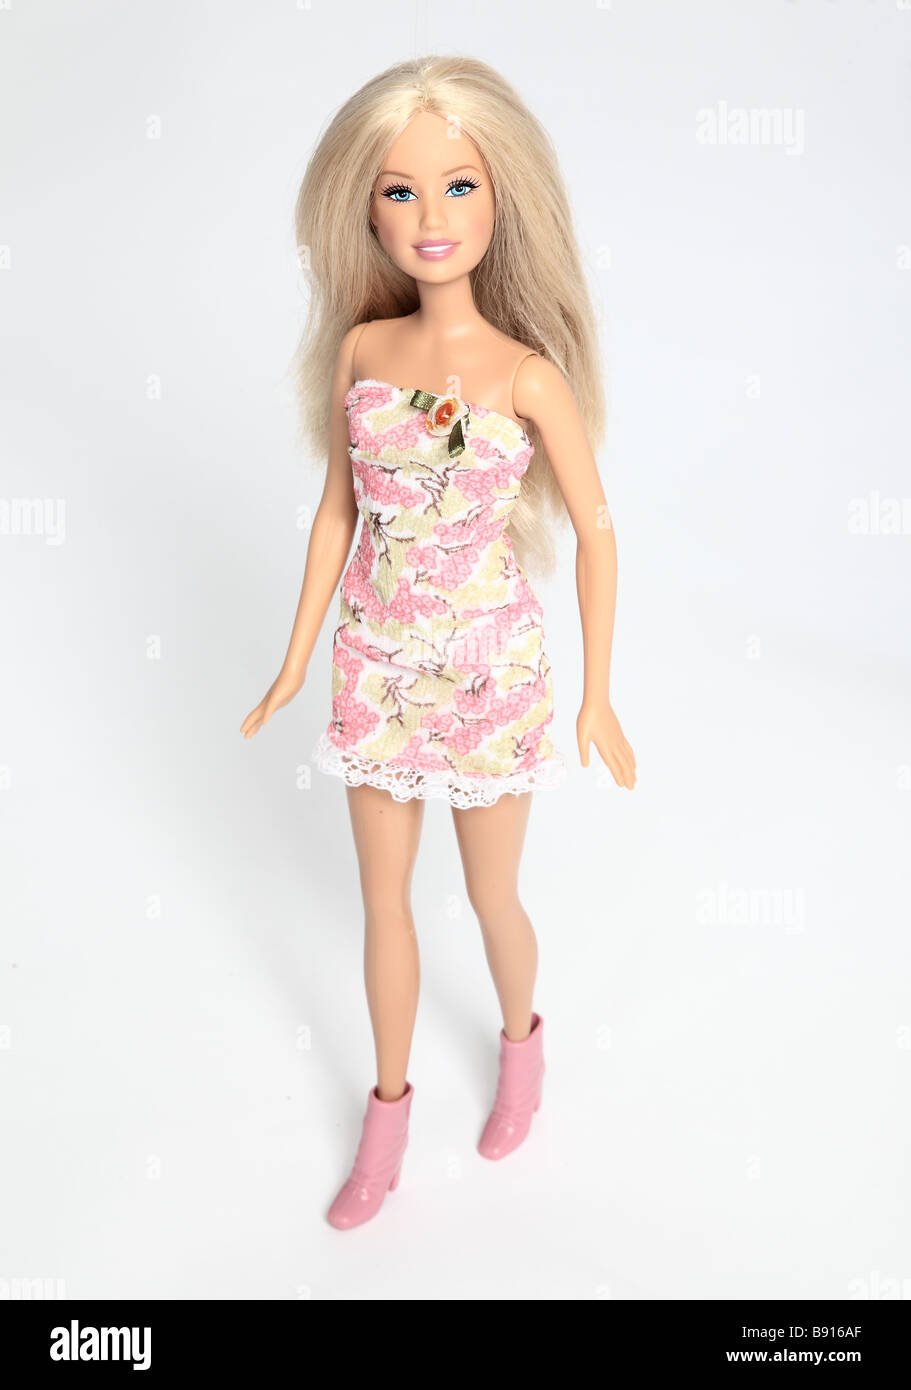 Barbie doll wearing a pink dress. - Stock Image